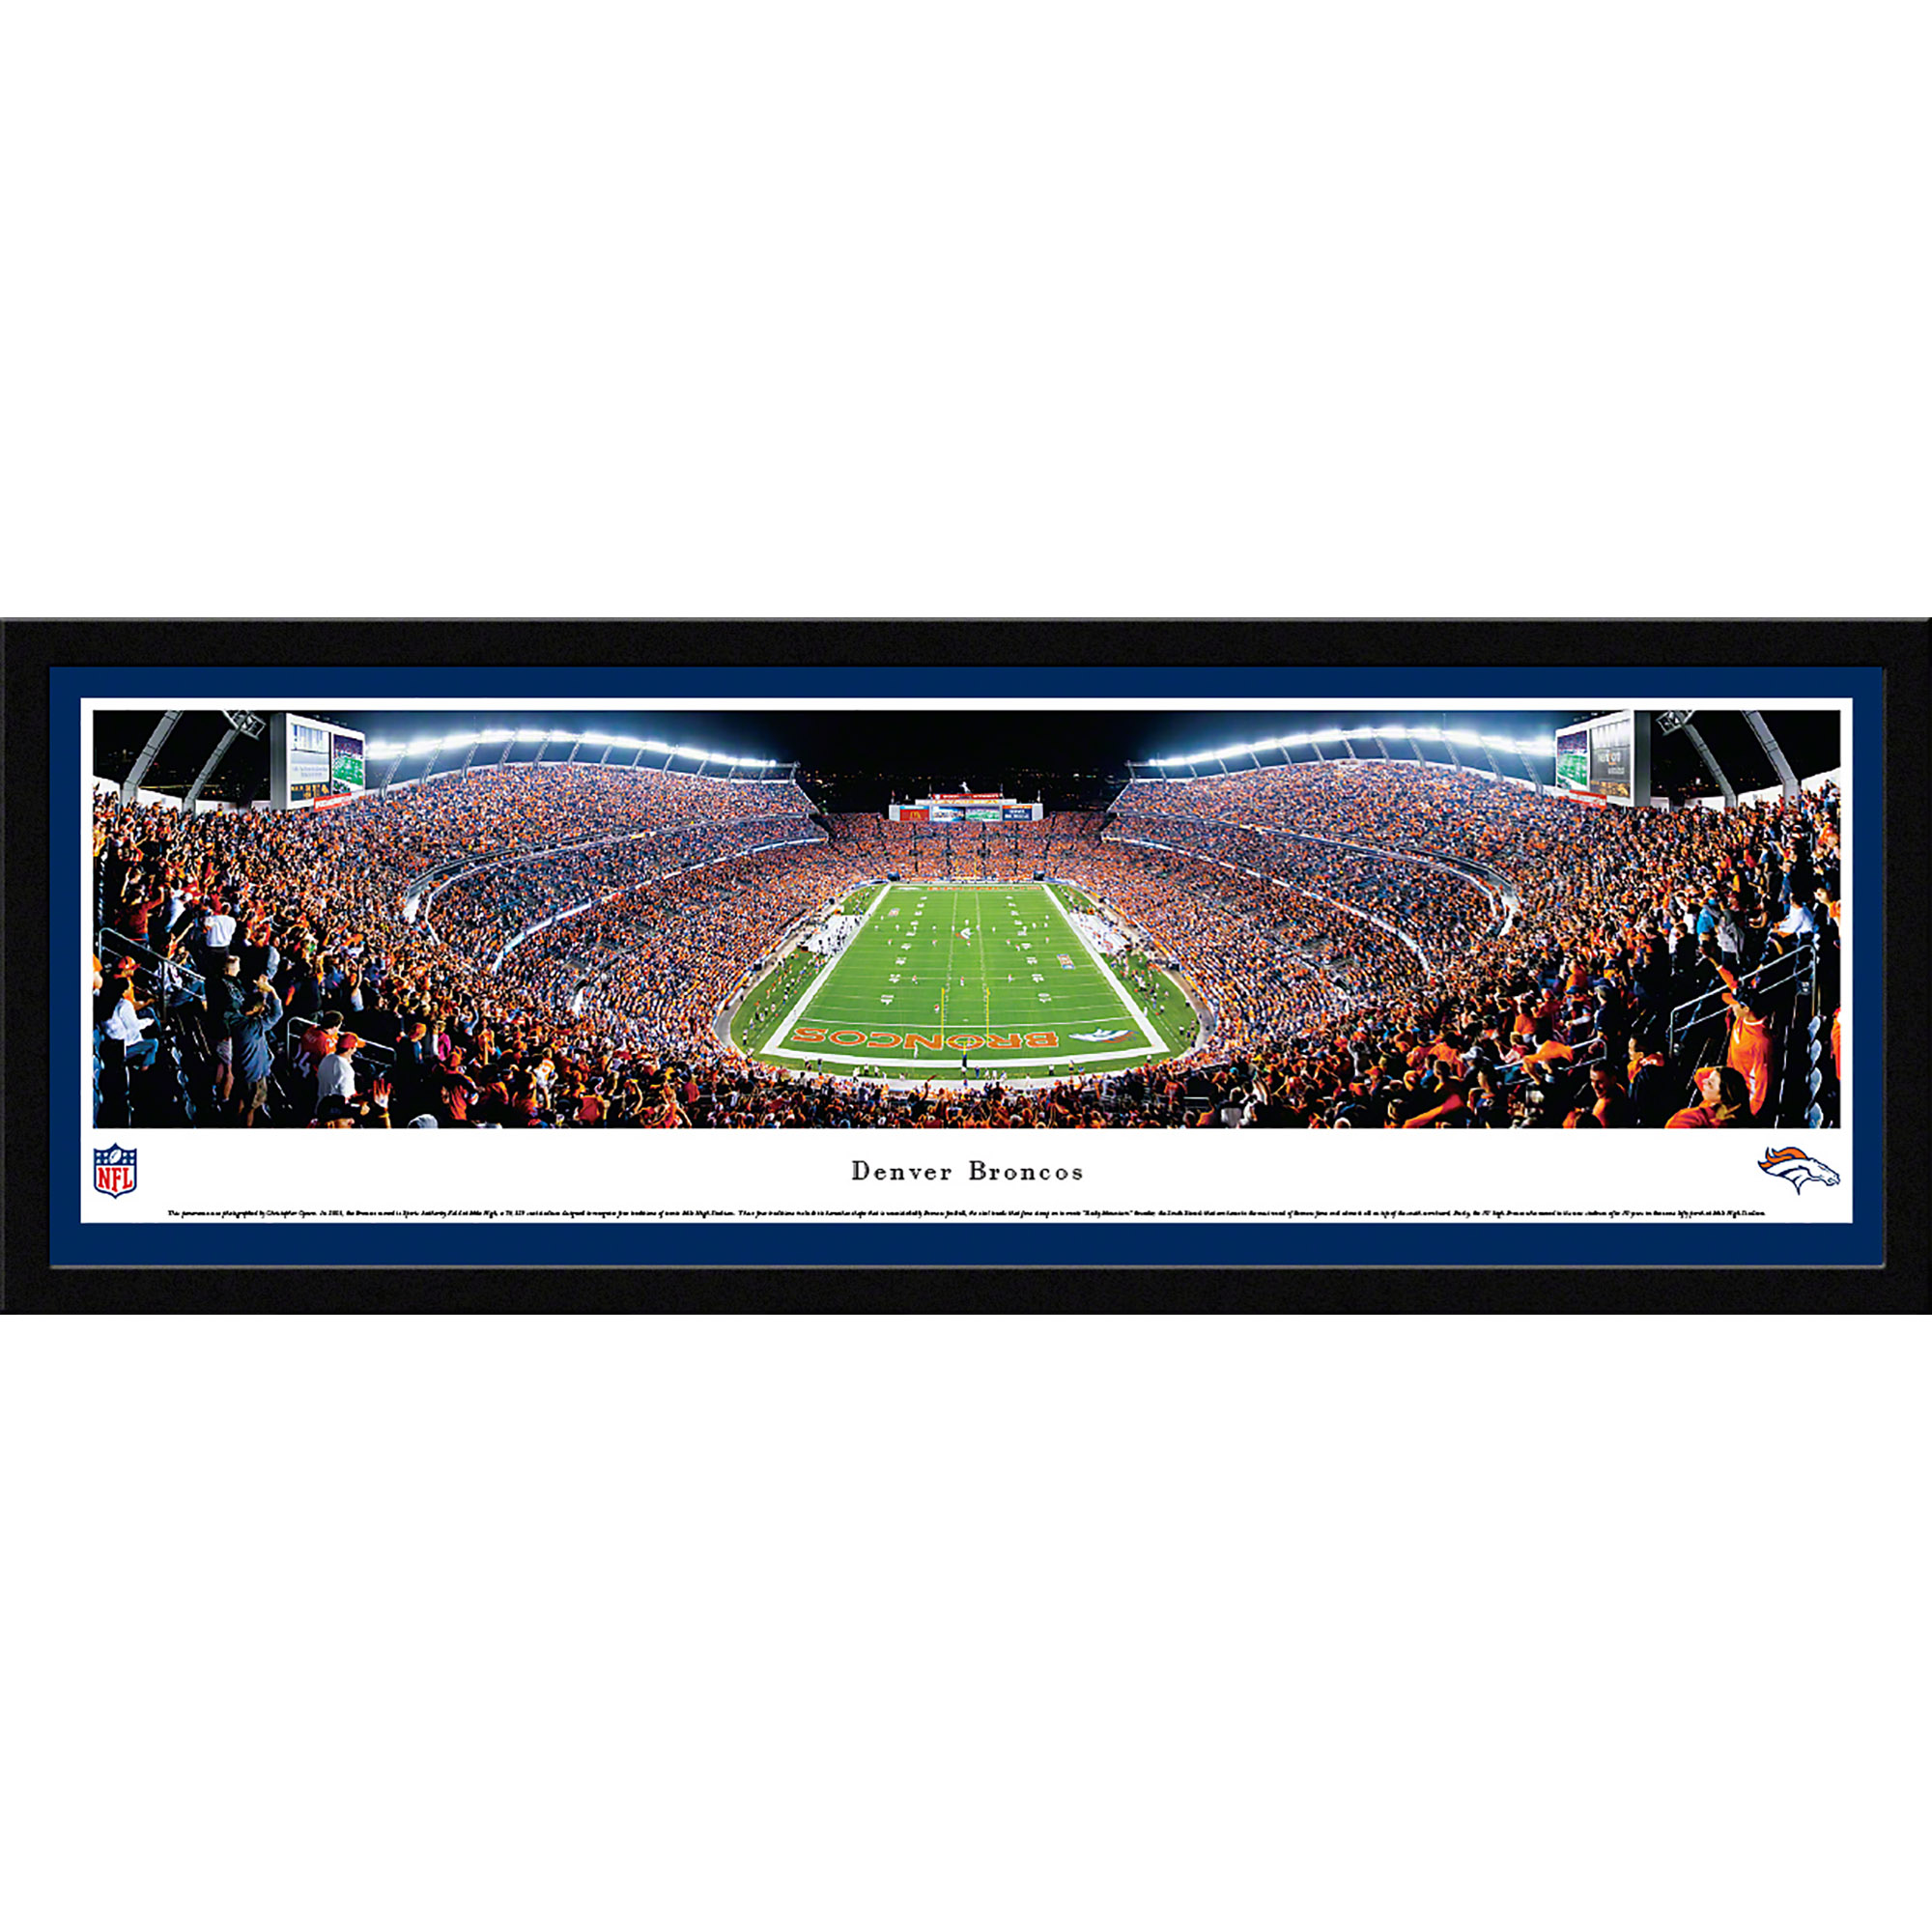 Denver Broncos - End Zone at Sports Authority Field at Mile High - Blakeway Panoramas NFL Print with Select Frame and Single Mat